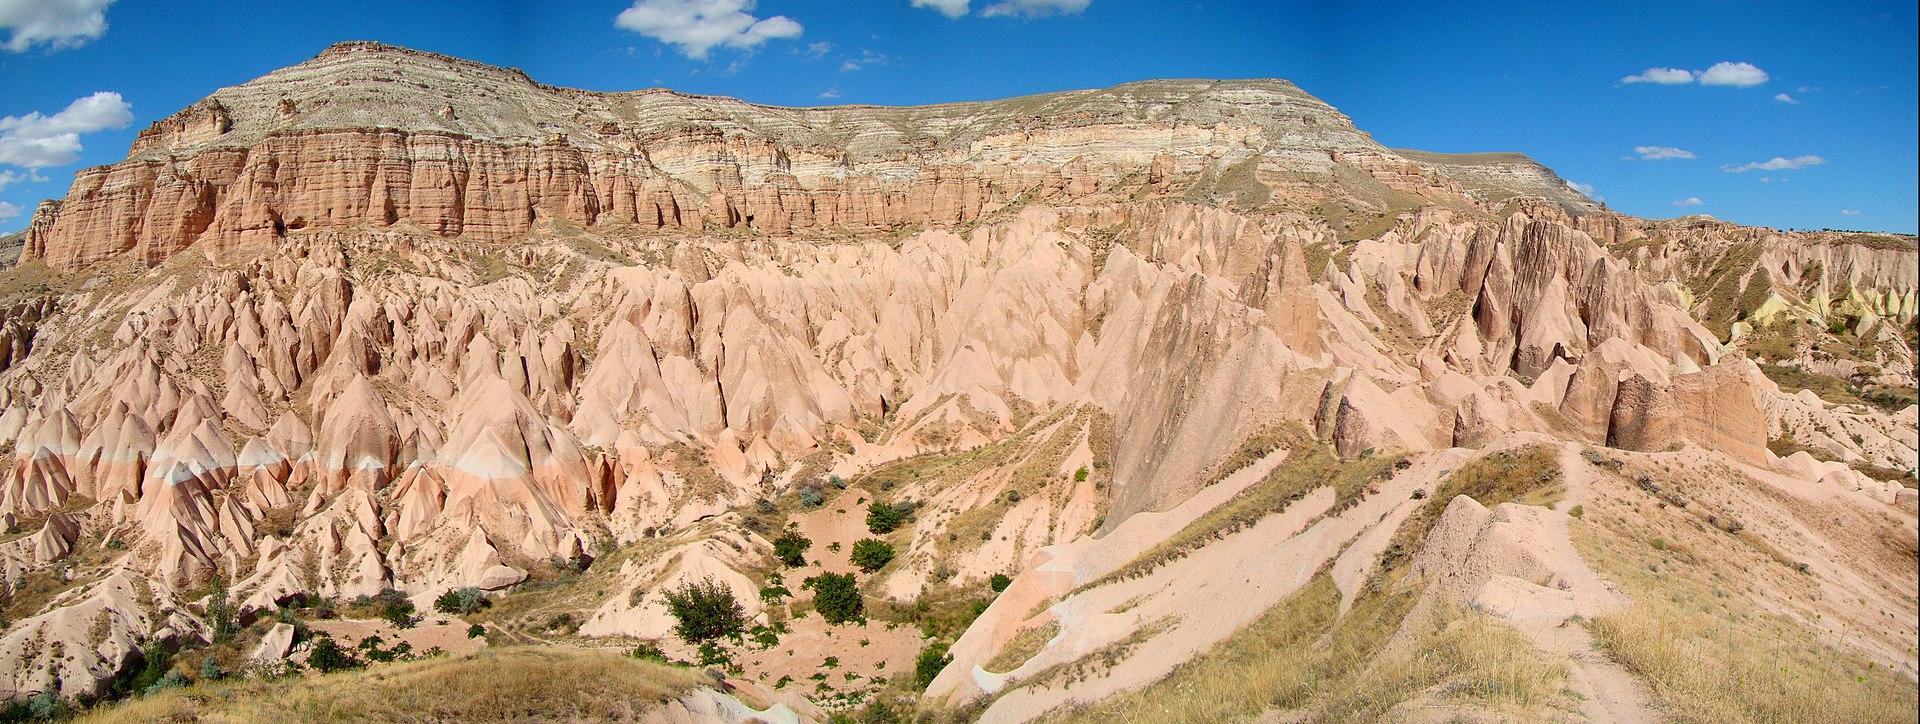 "Aktepe ""White Hill"" near Göreme and the Rock Sites of Cappadocia (UNESCO World Heritage Site)"